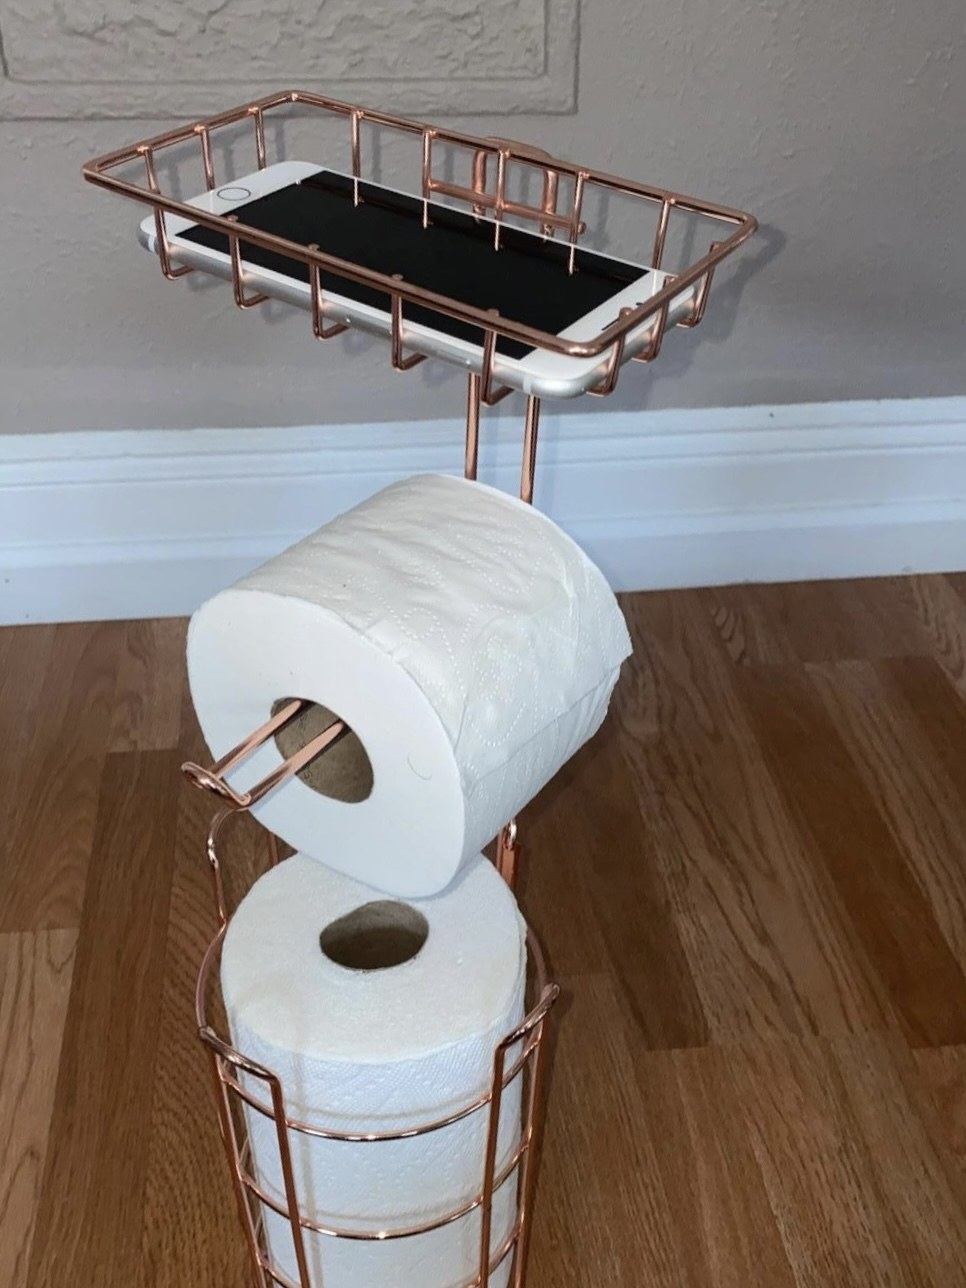 reviewer photo showing the toilet paper stand with their phone on top in the holder